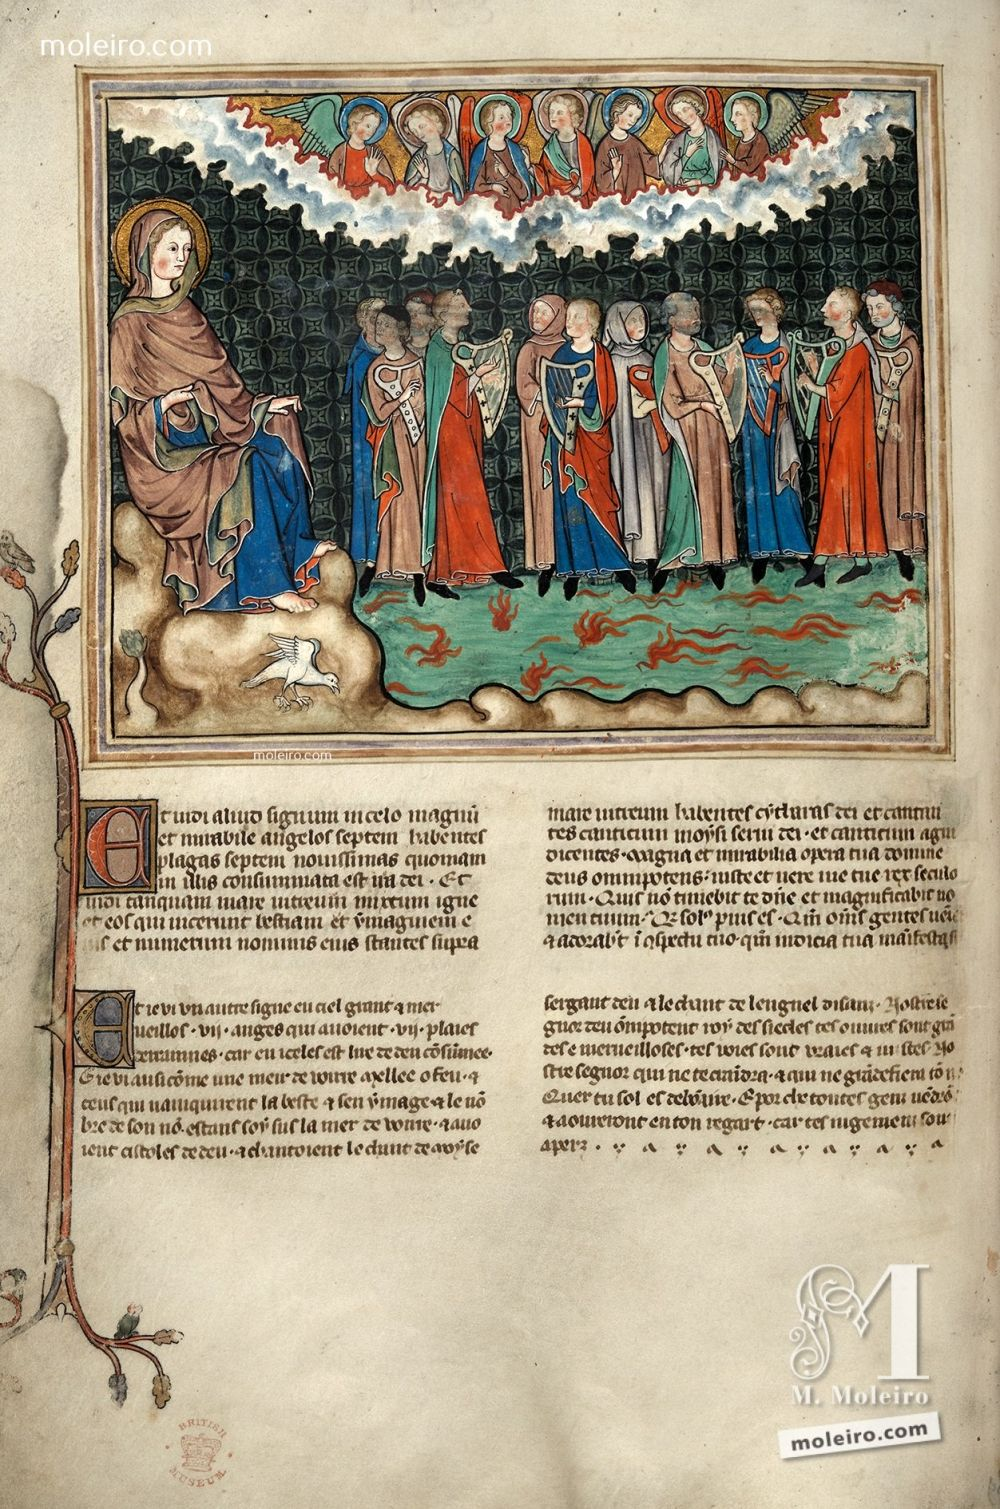 f. 28v · The canticle of Moses and the canticle of the Lamb (Ap. 15, 1-4) Apocalypse XIVth century